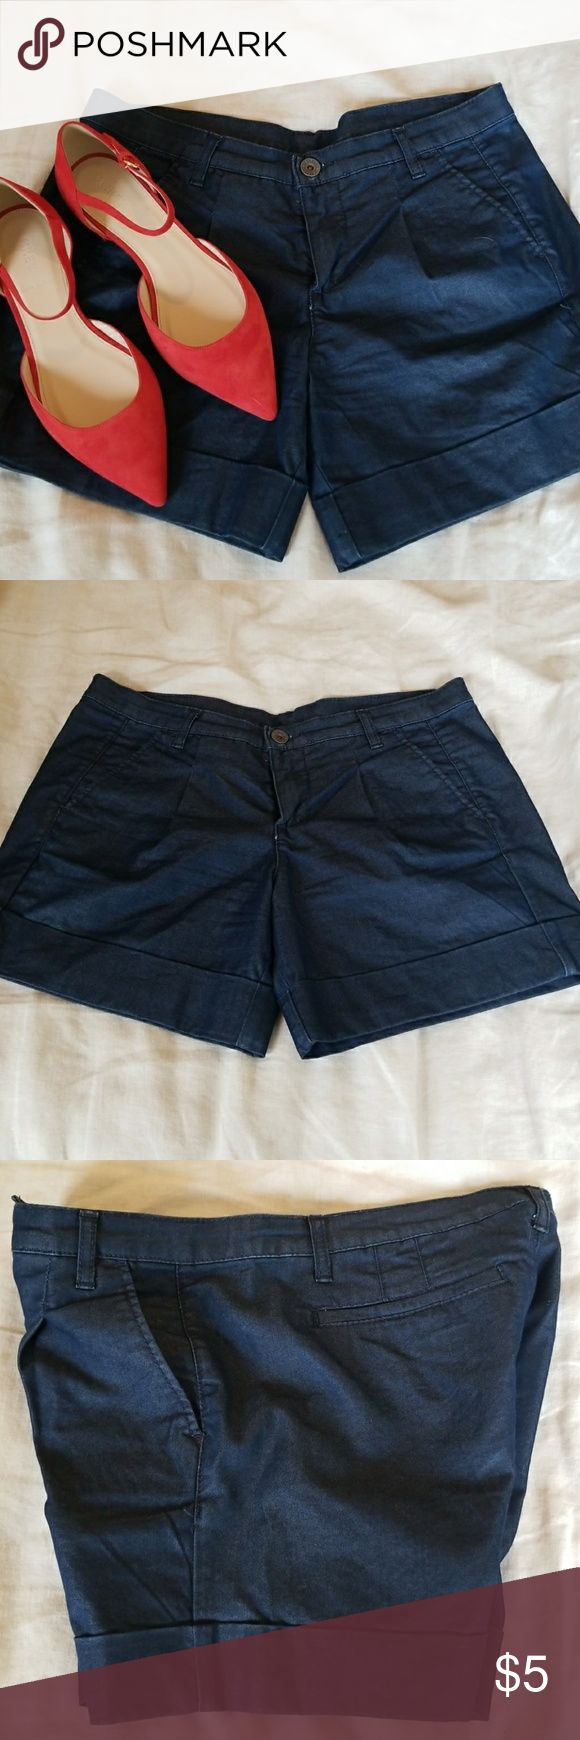 Navy Benetton Jeans Shorts Sz 40 Dark navy shorts with a light sheen finish, a nice alternative to denim. No trades please! The shoes do not come with these shorts but are for sale, check out my other listings! Benetton Jeans Shorts